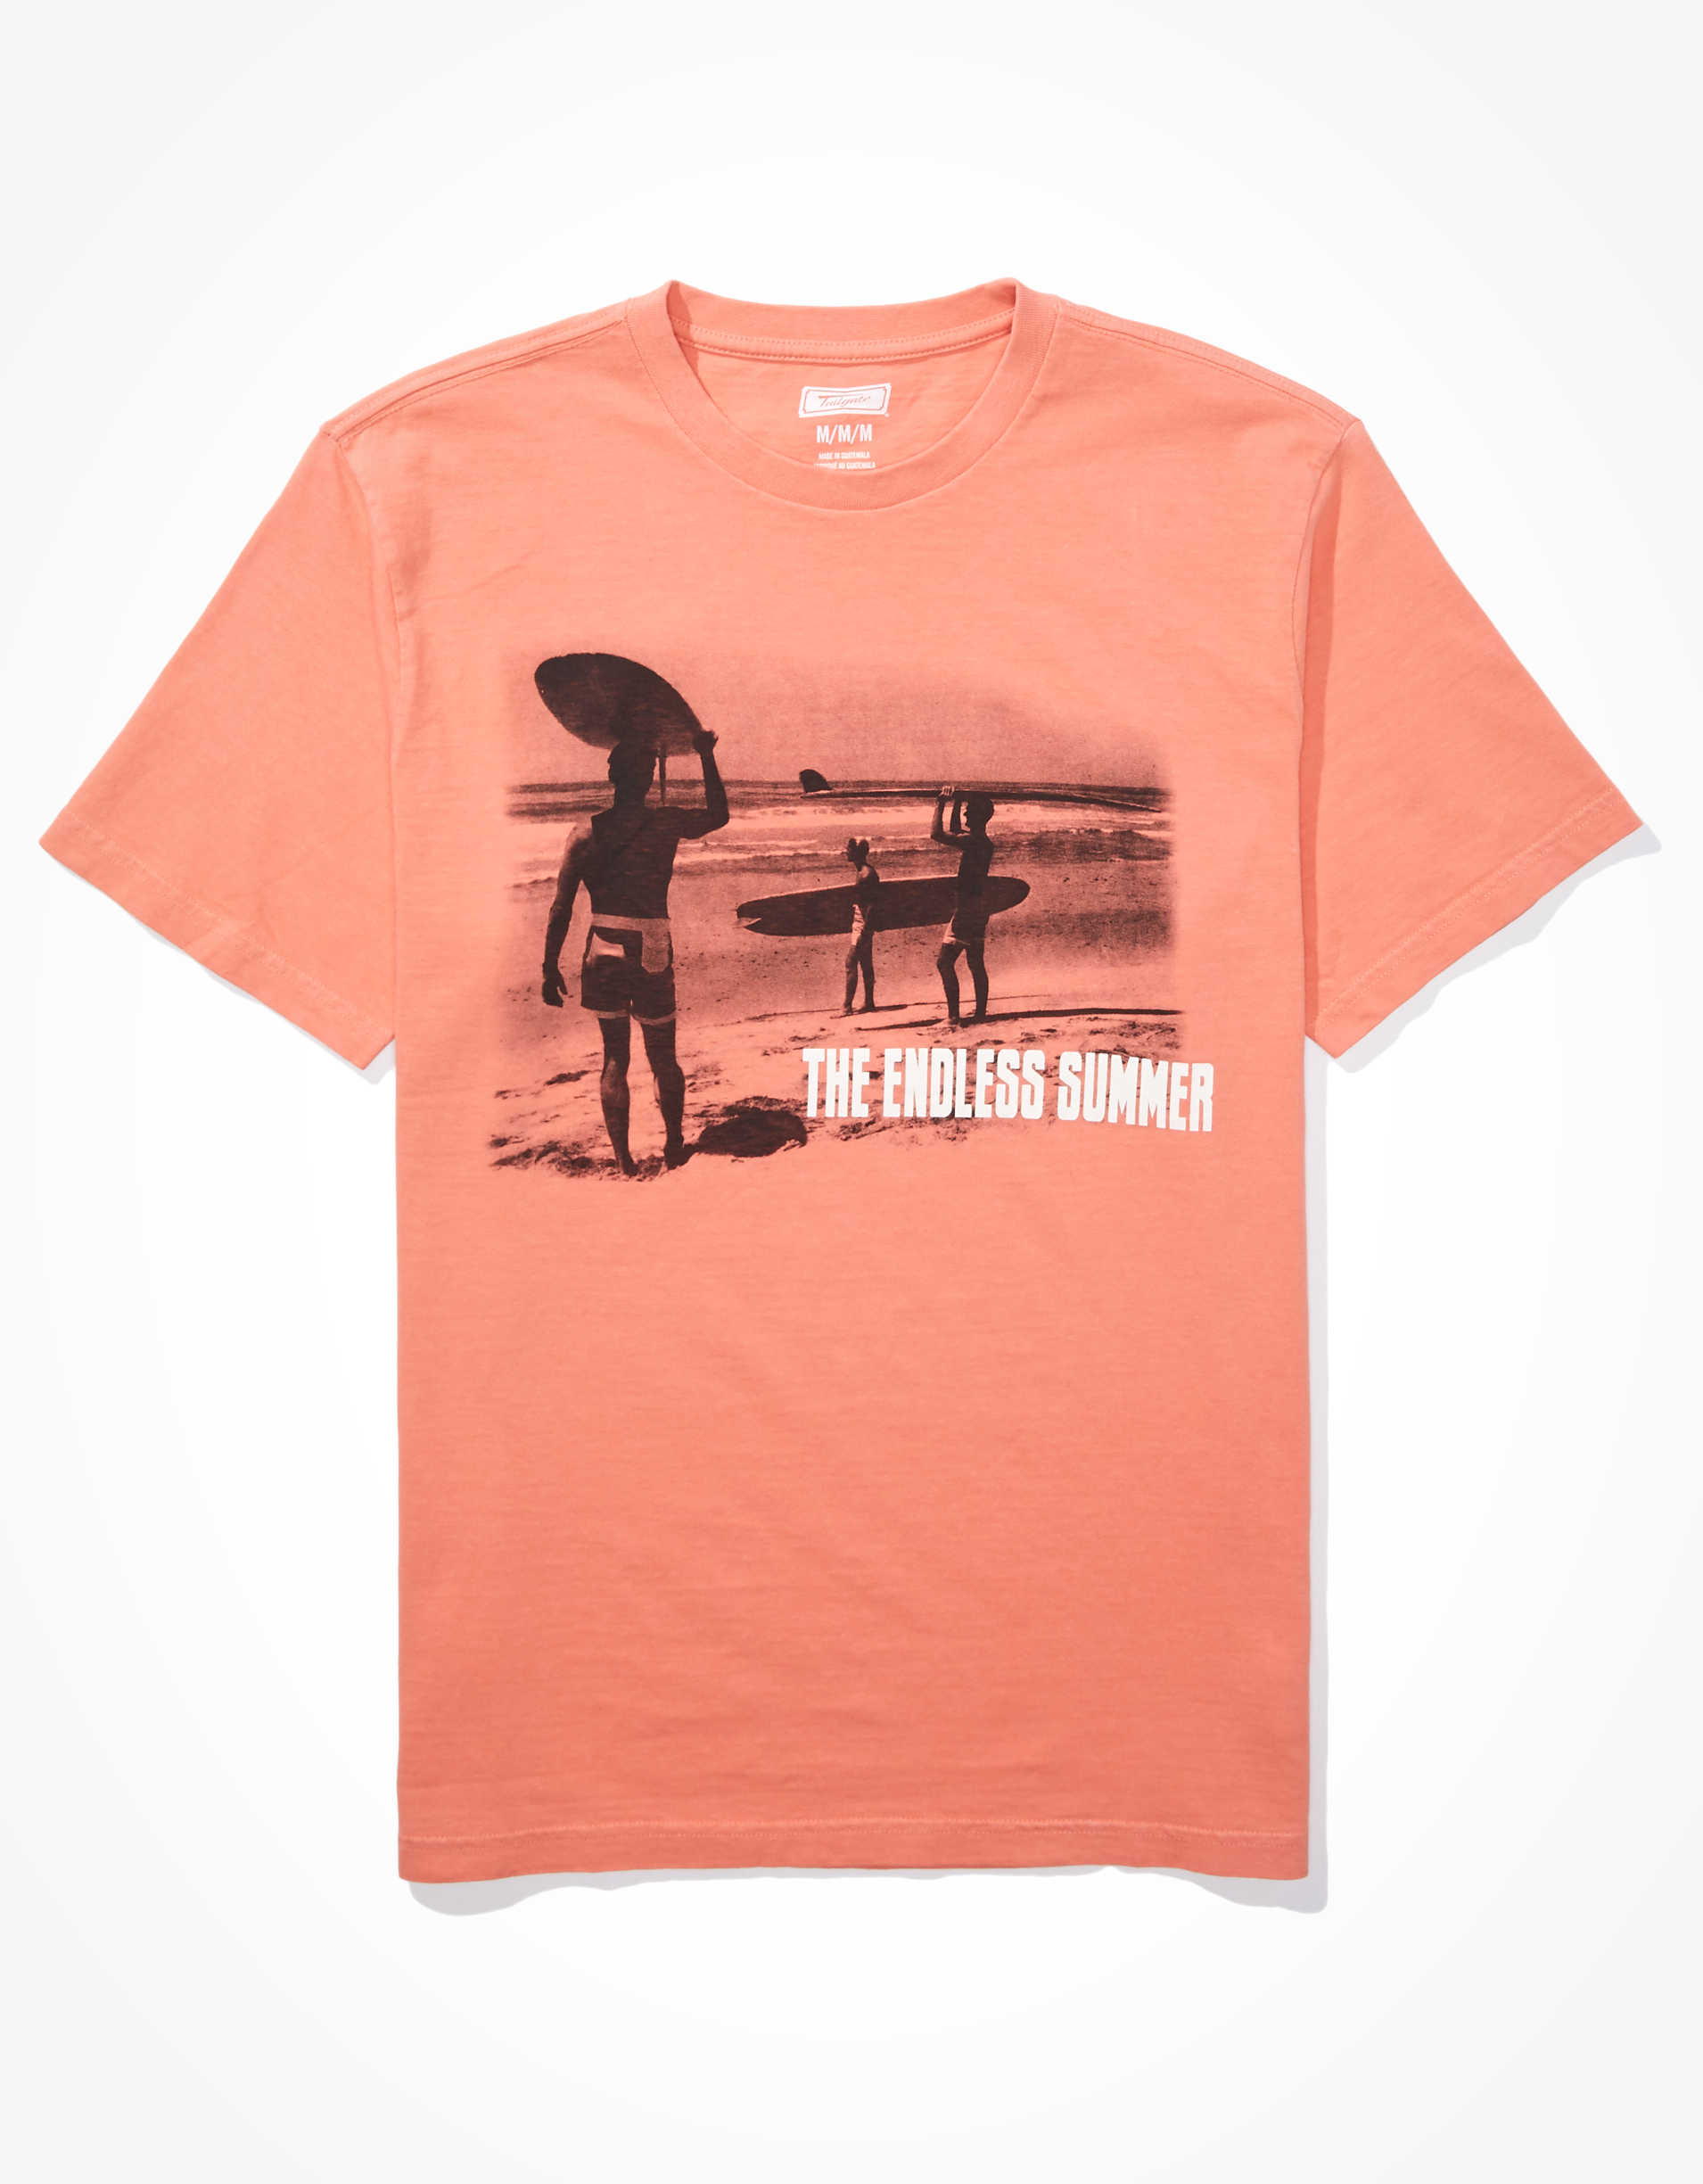 Tailgate Men's Endless Summer Graphic T-Shirt